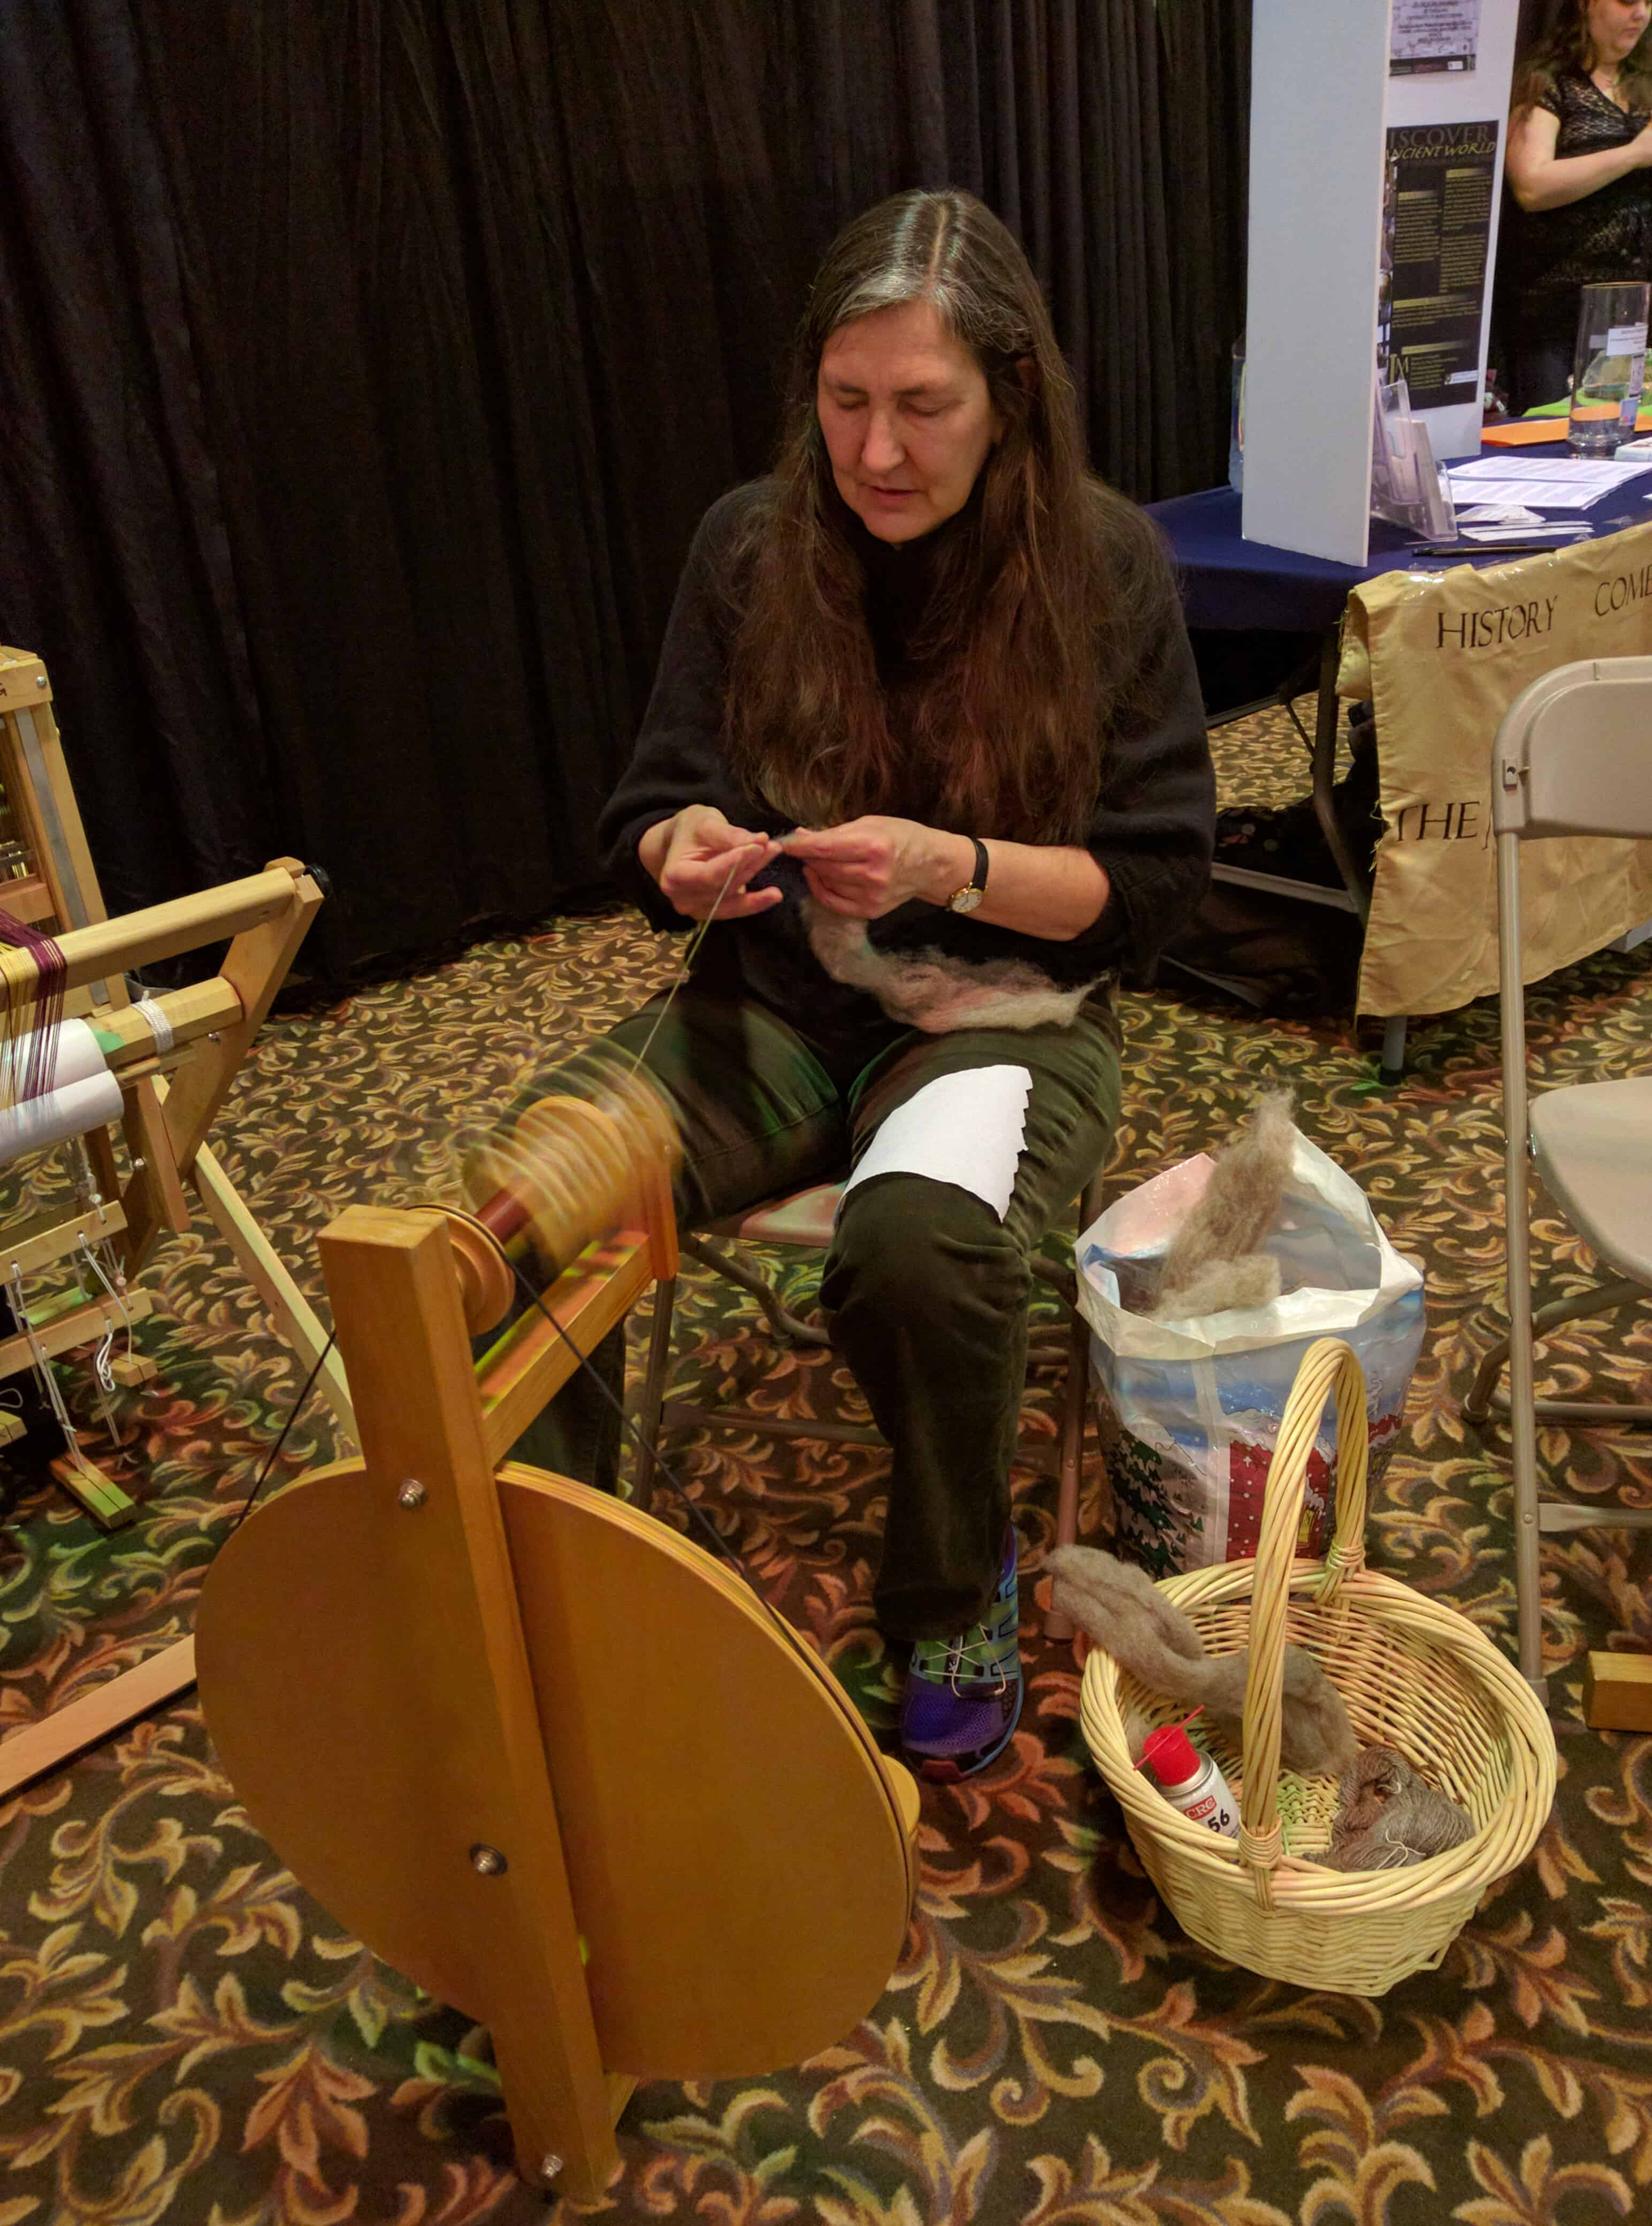 Members of the Saskatoon Spinners and Weavers Guild giving demonstrations to the public at the Saskatoon Heritage festival on February 5th.